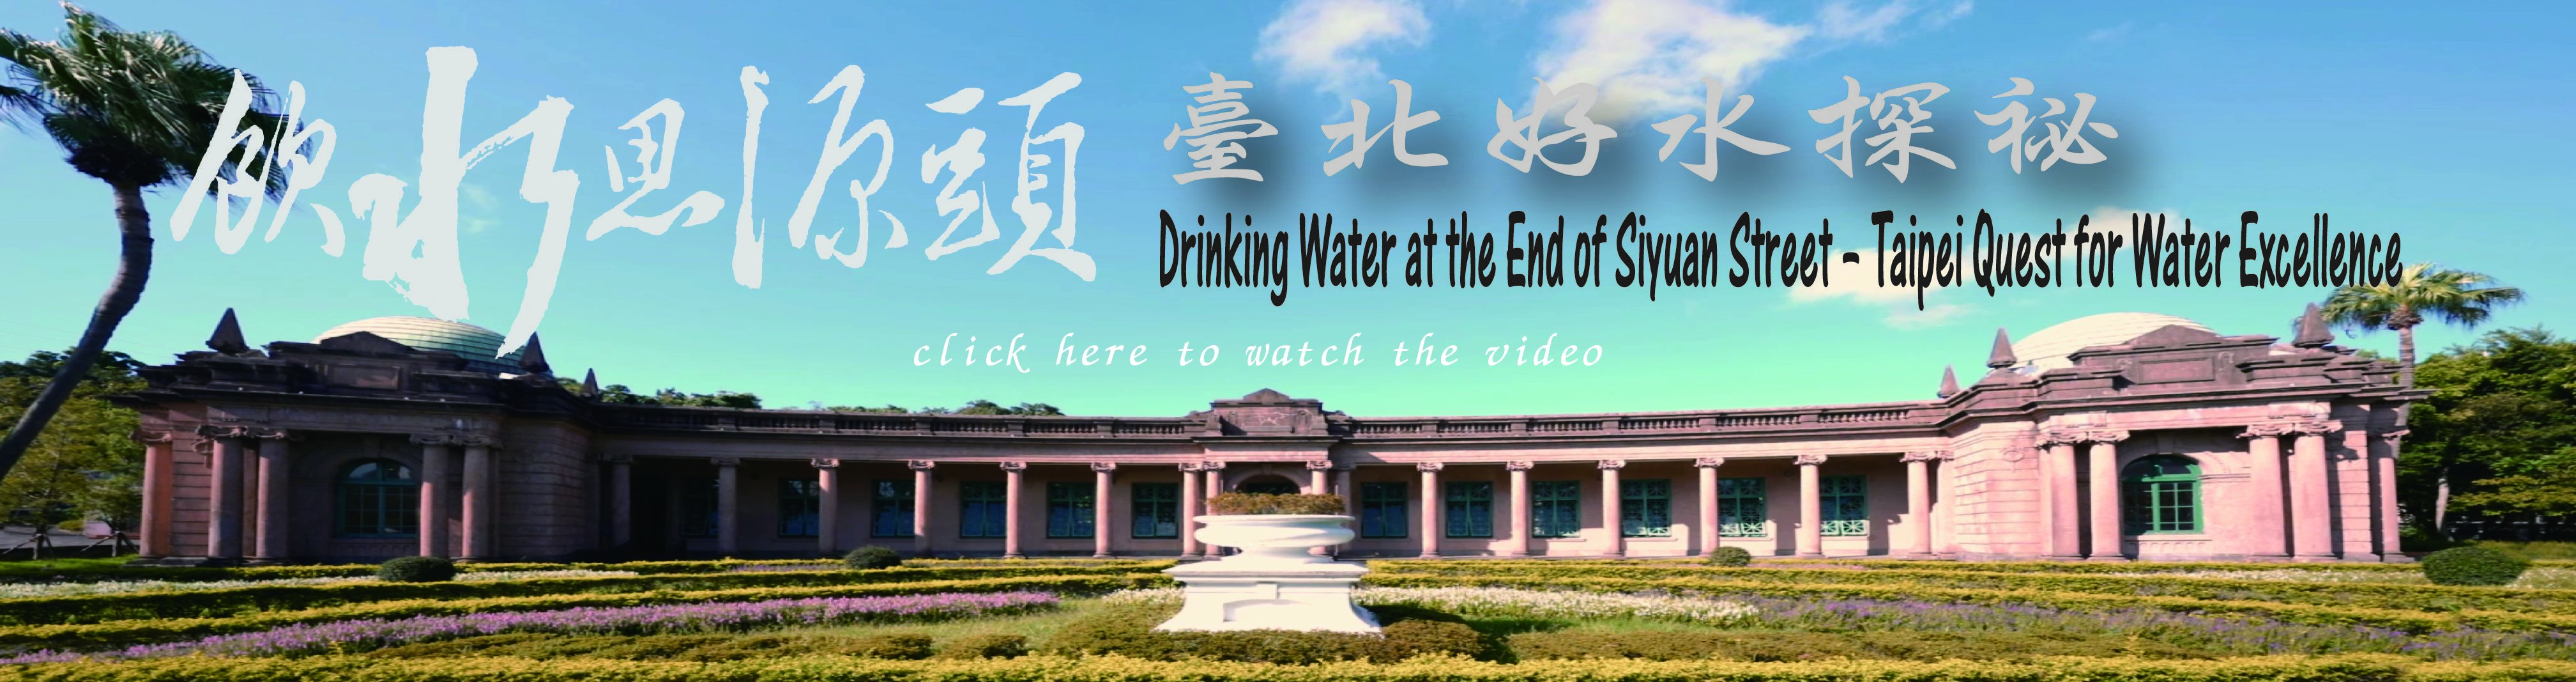 Drinking Water at the End of Siyuan Street - Taipei Quest for Water Excellence.飲水思源頭 長版(英文語音字幕)